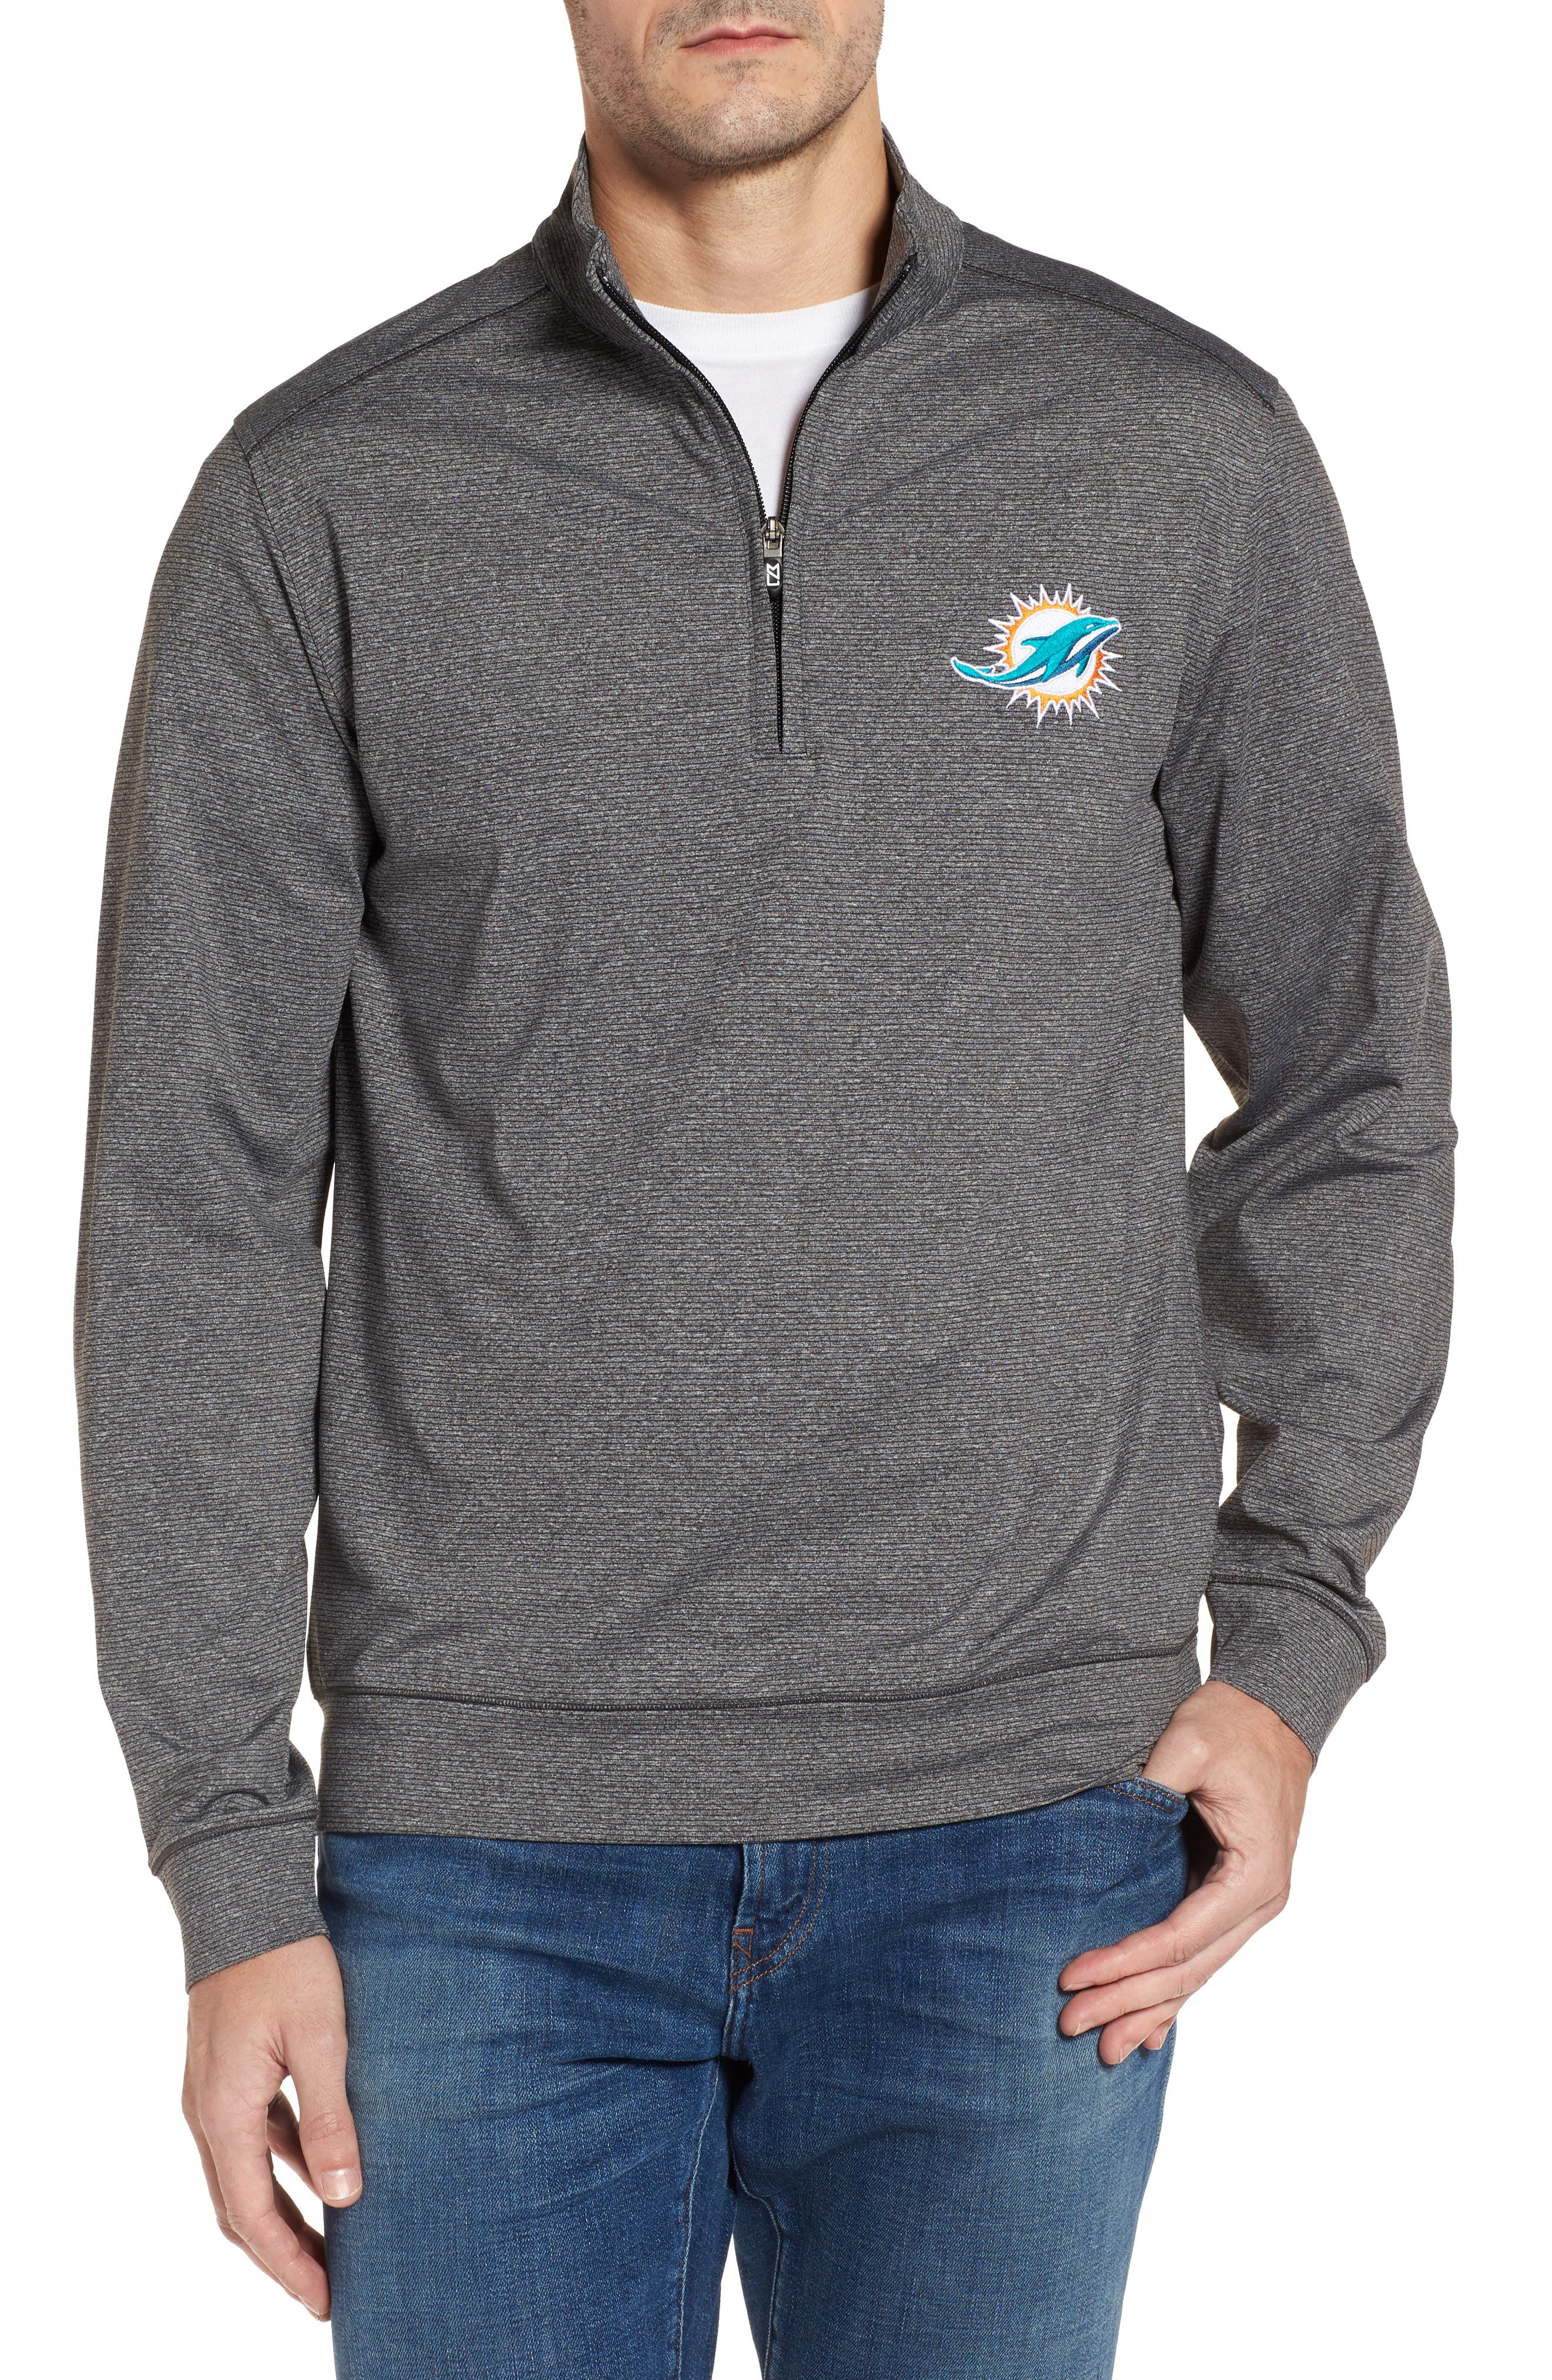 Cutter & Butter Shoreline - Miami Dolphins Half Zip Pullover,                         Main,                         color, Charcoal Heather